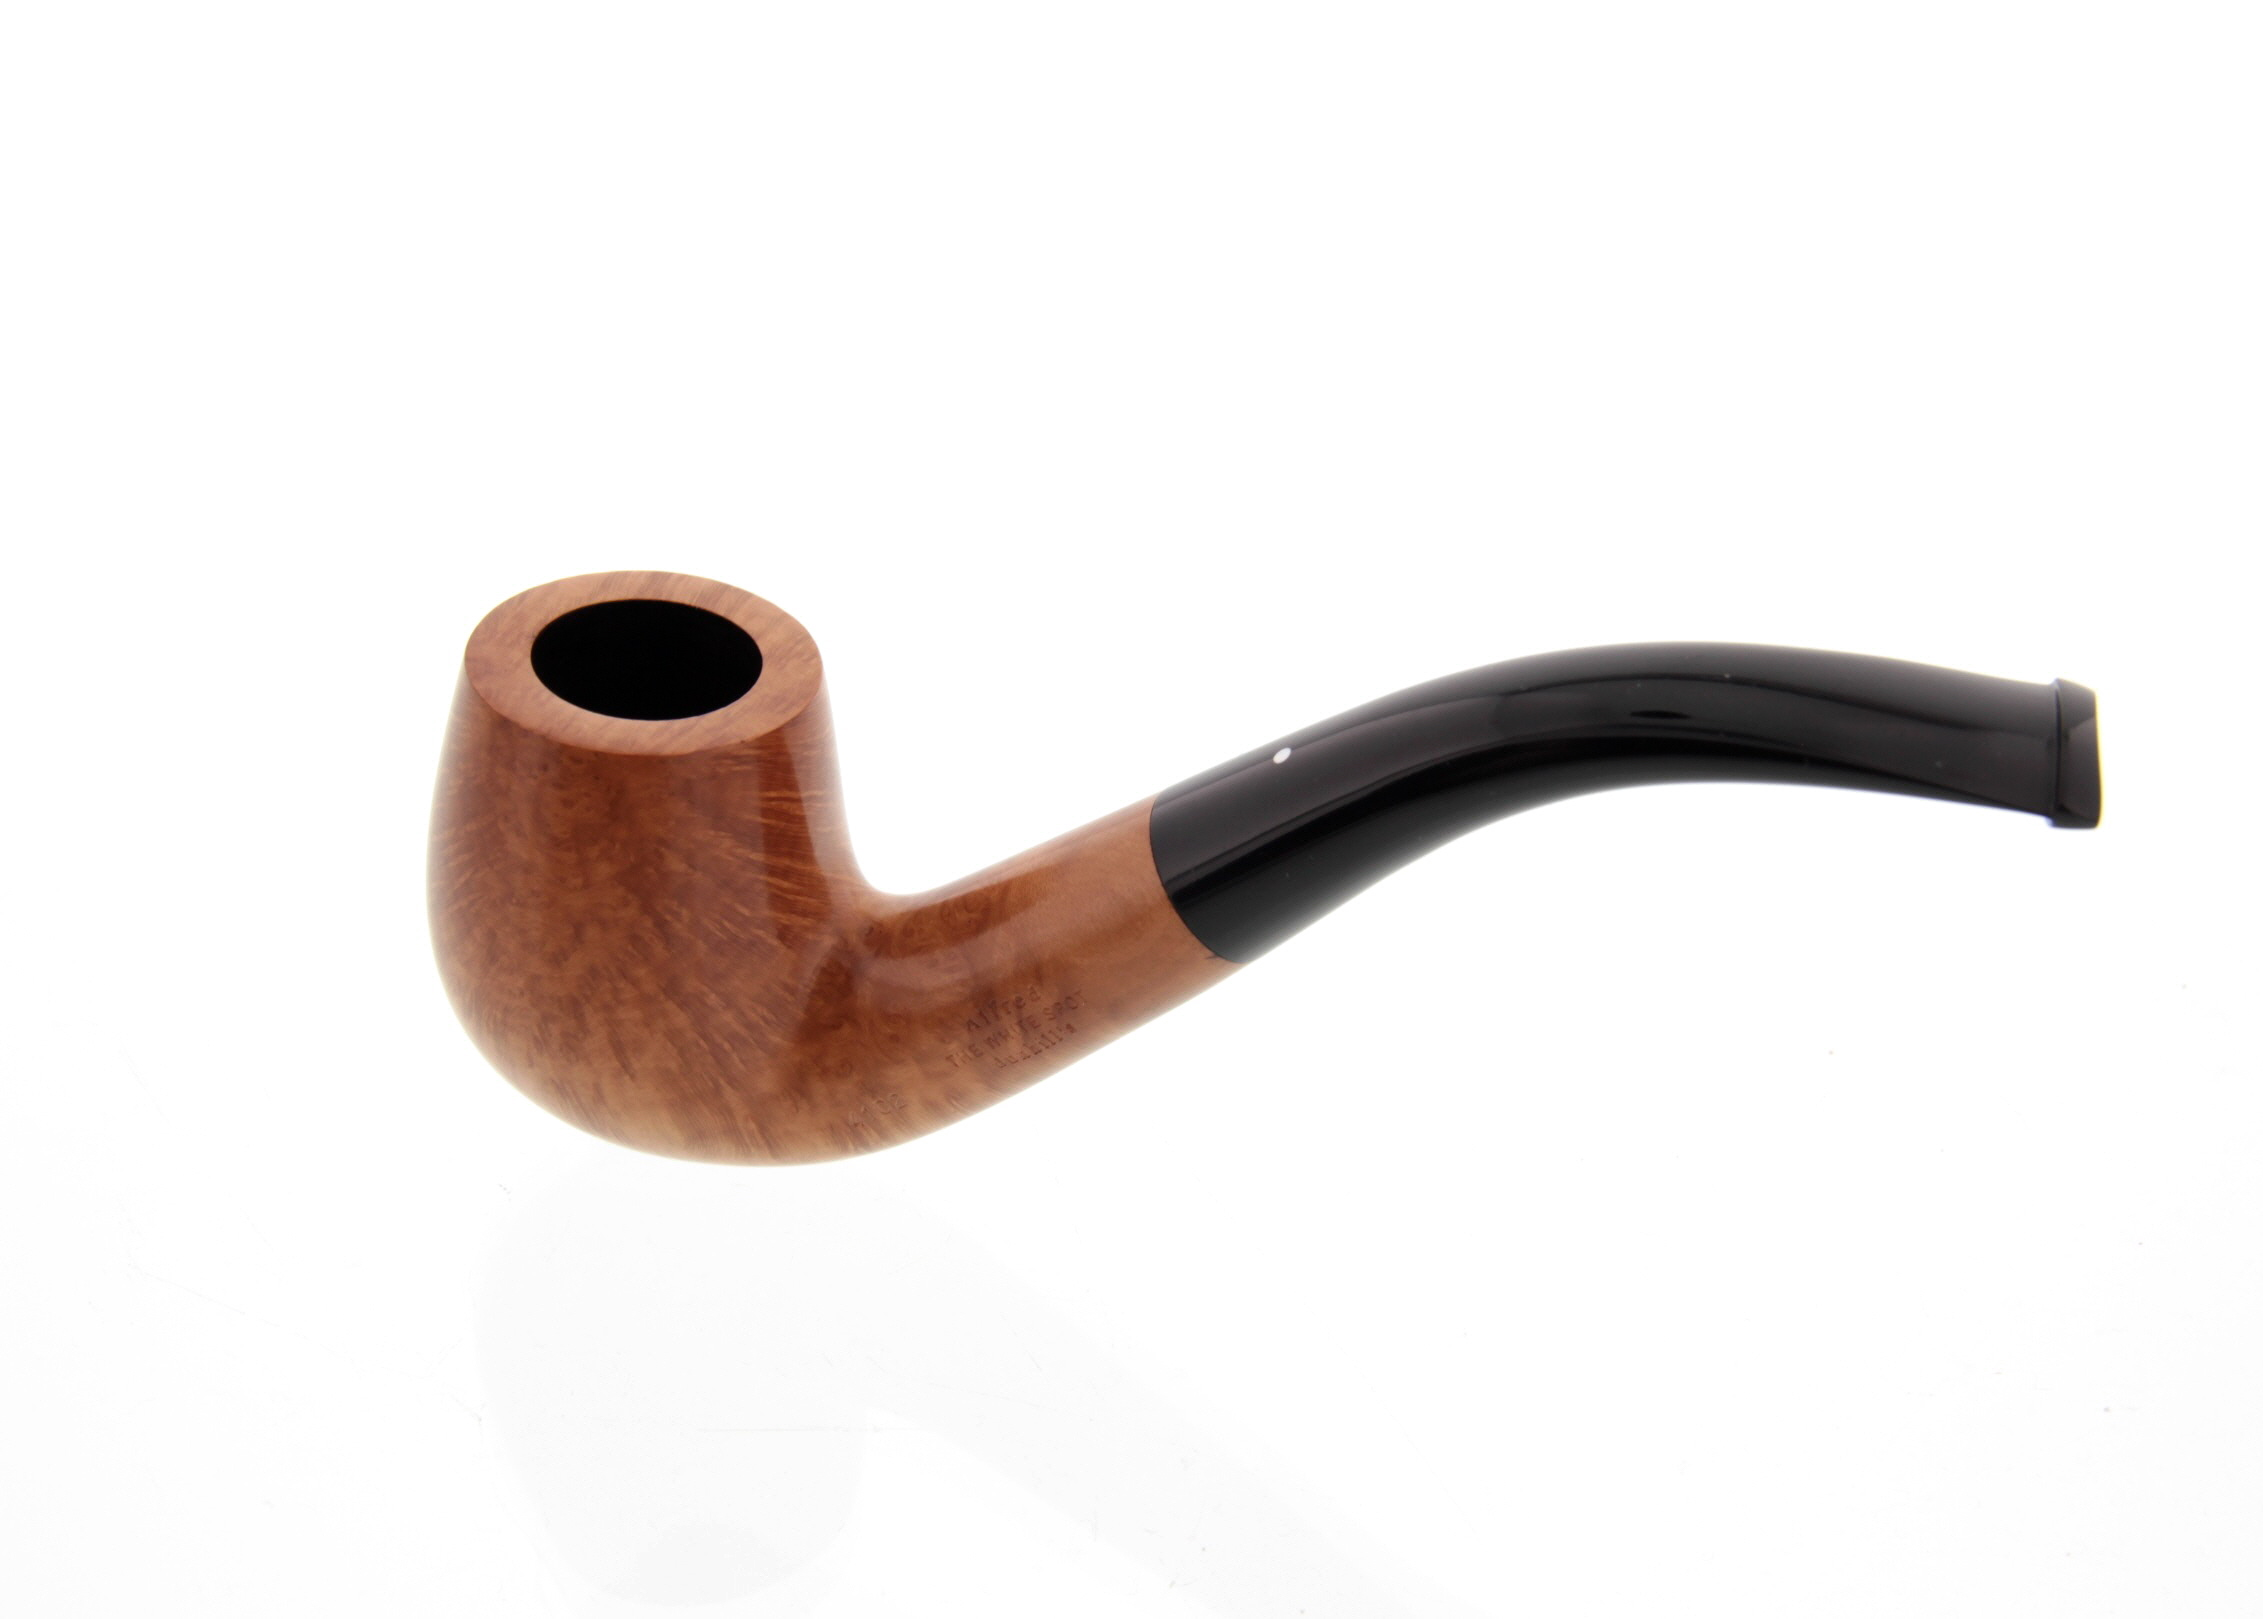 Dunhill The White Spot Root Briar No. 4102